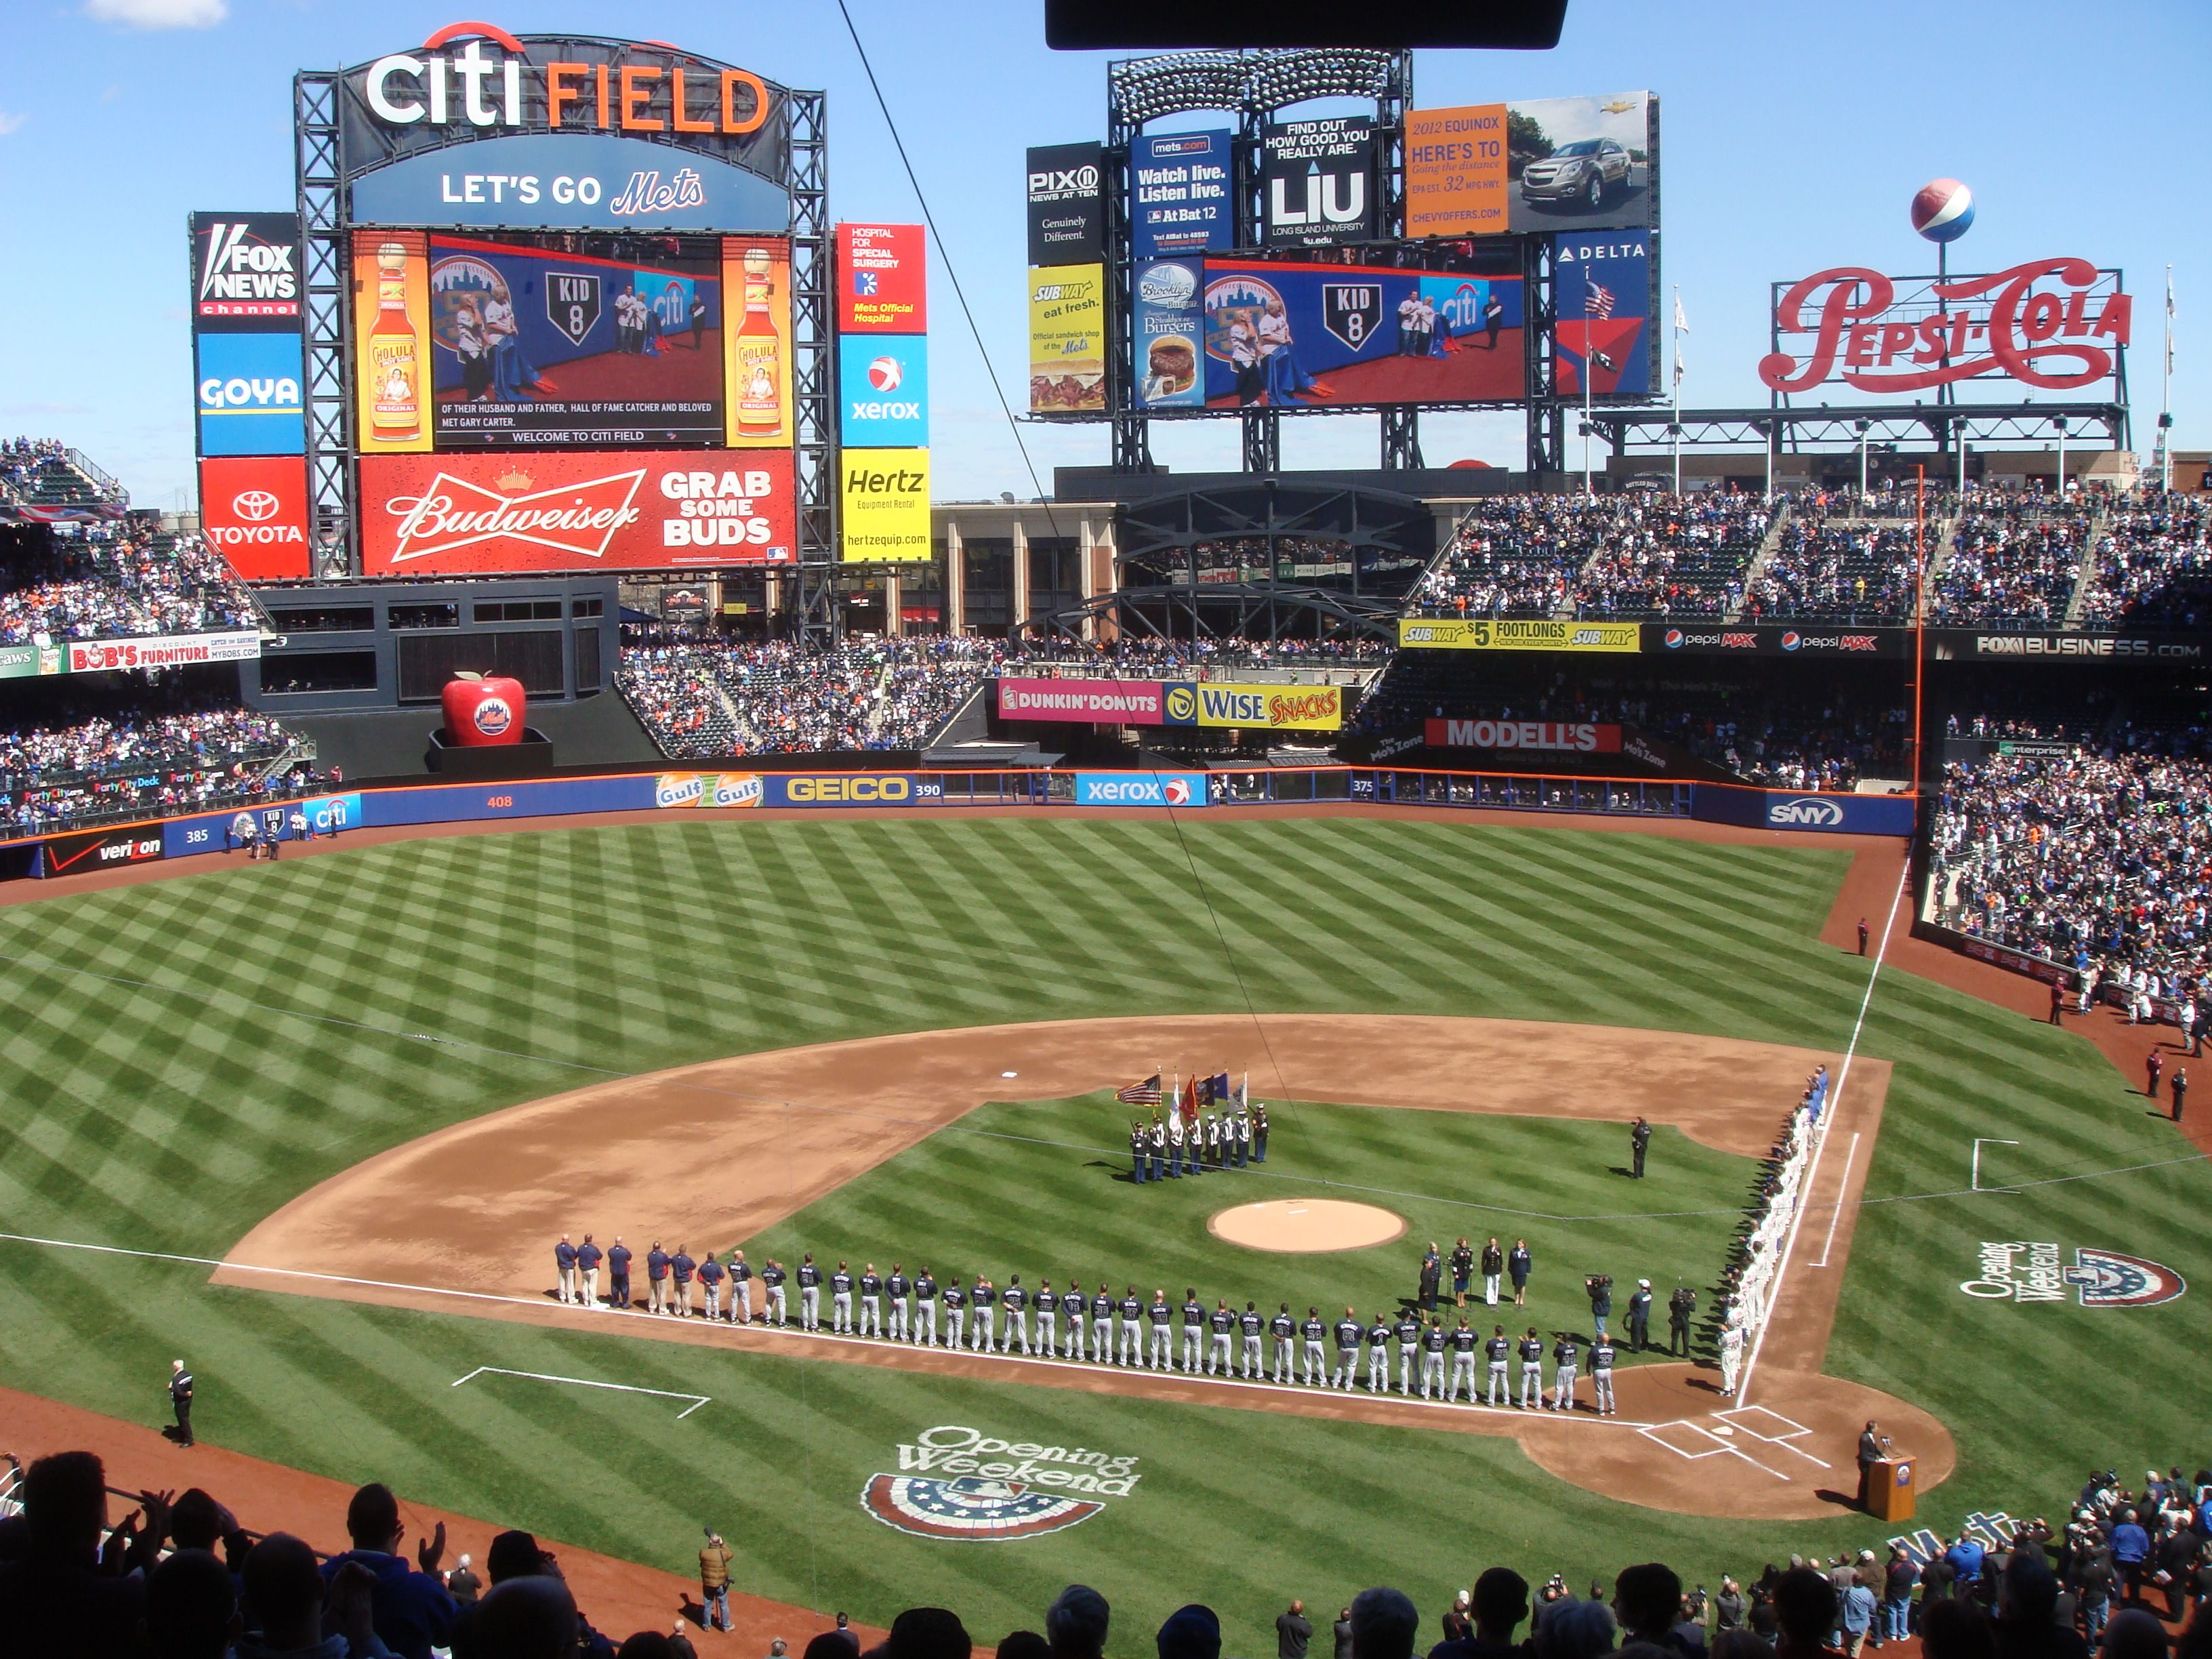 Citi Field is a stadium located in Flushing Meadows–Corona Park in